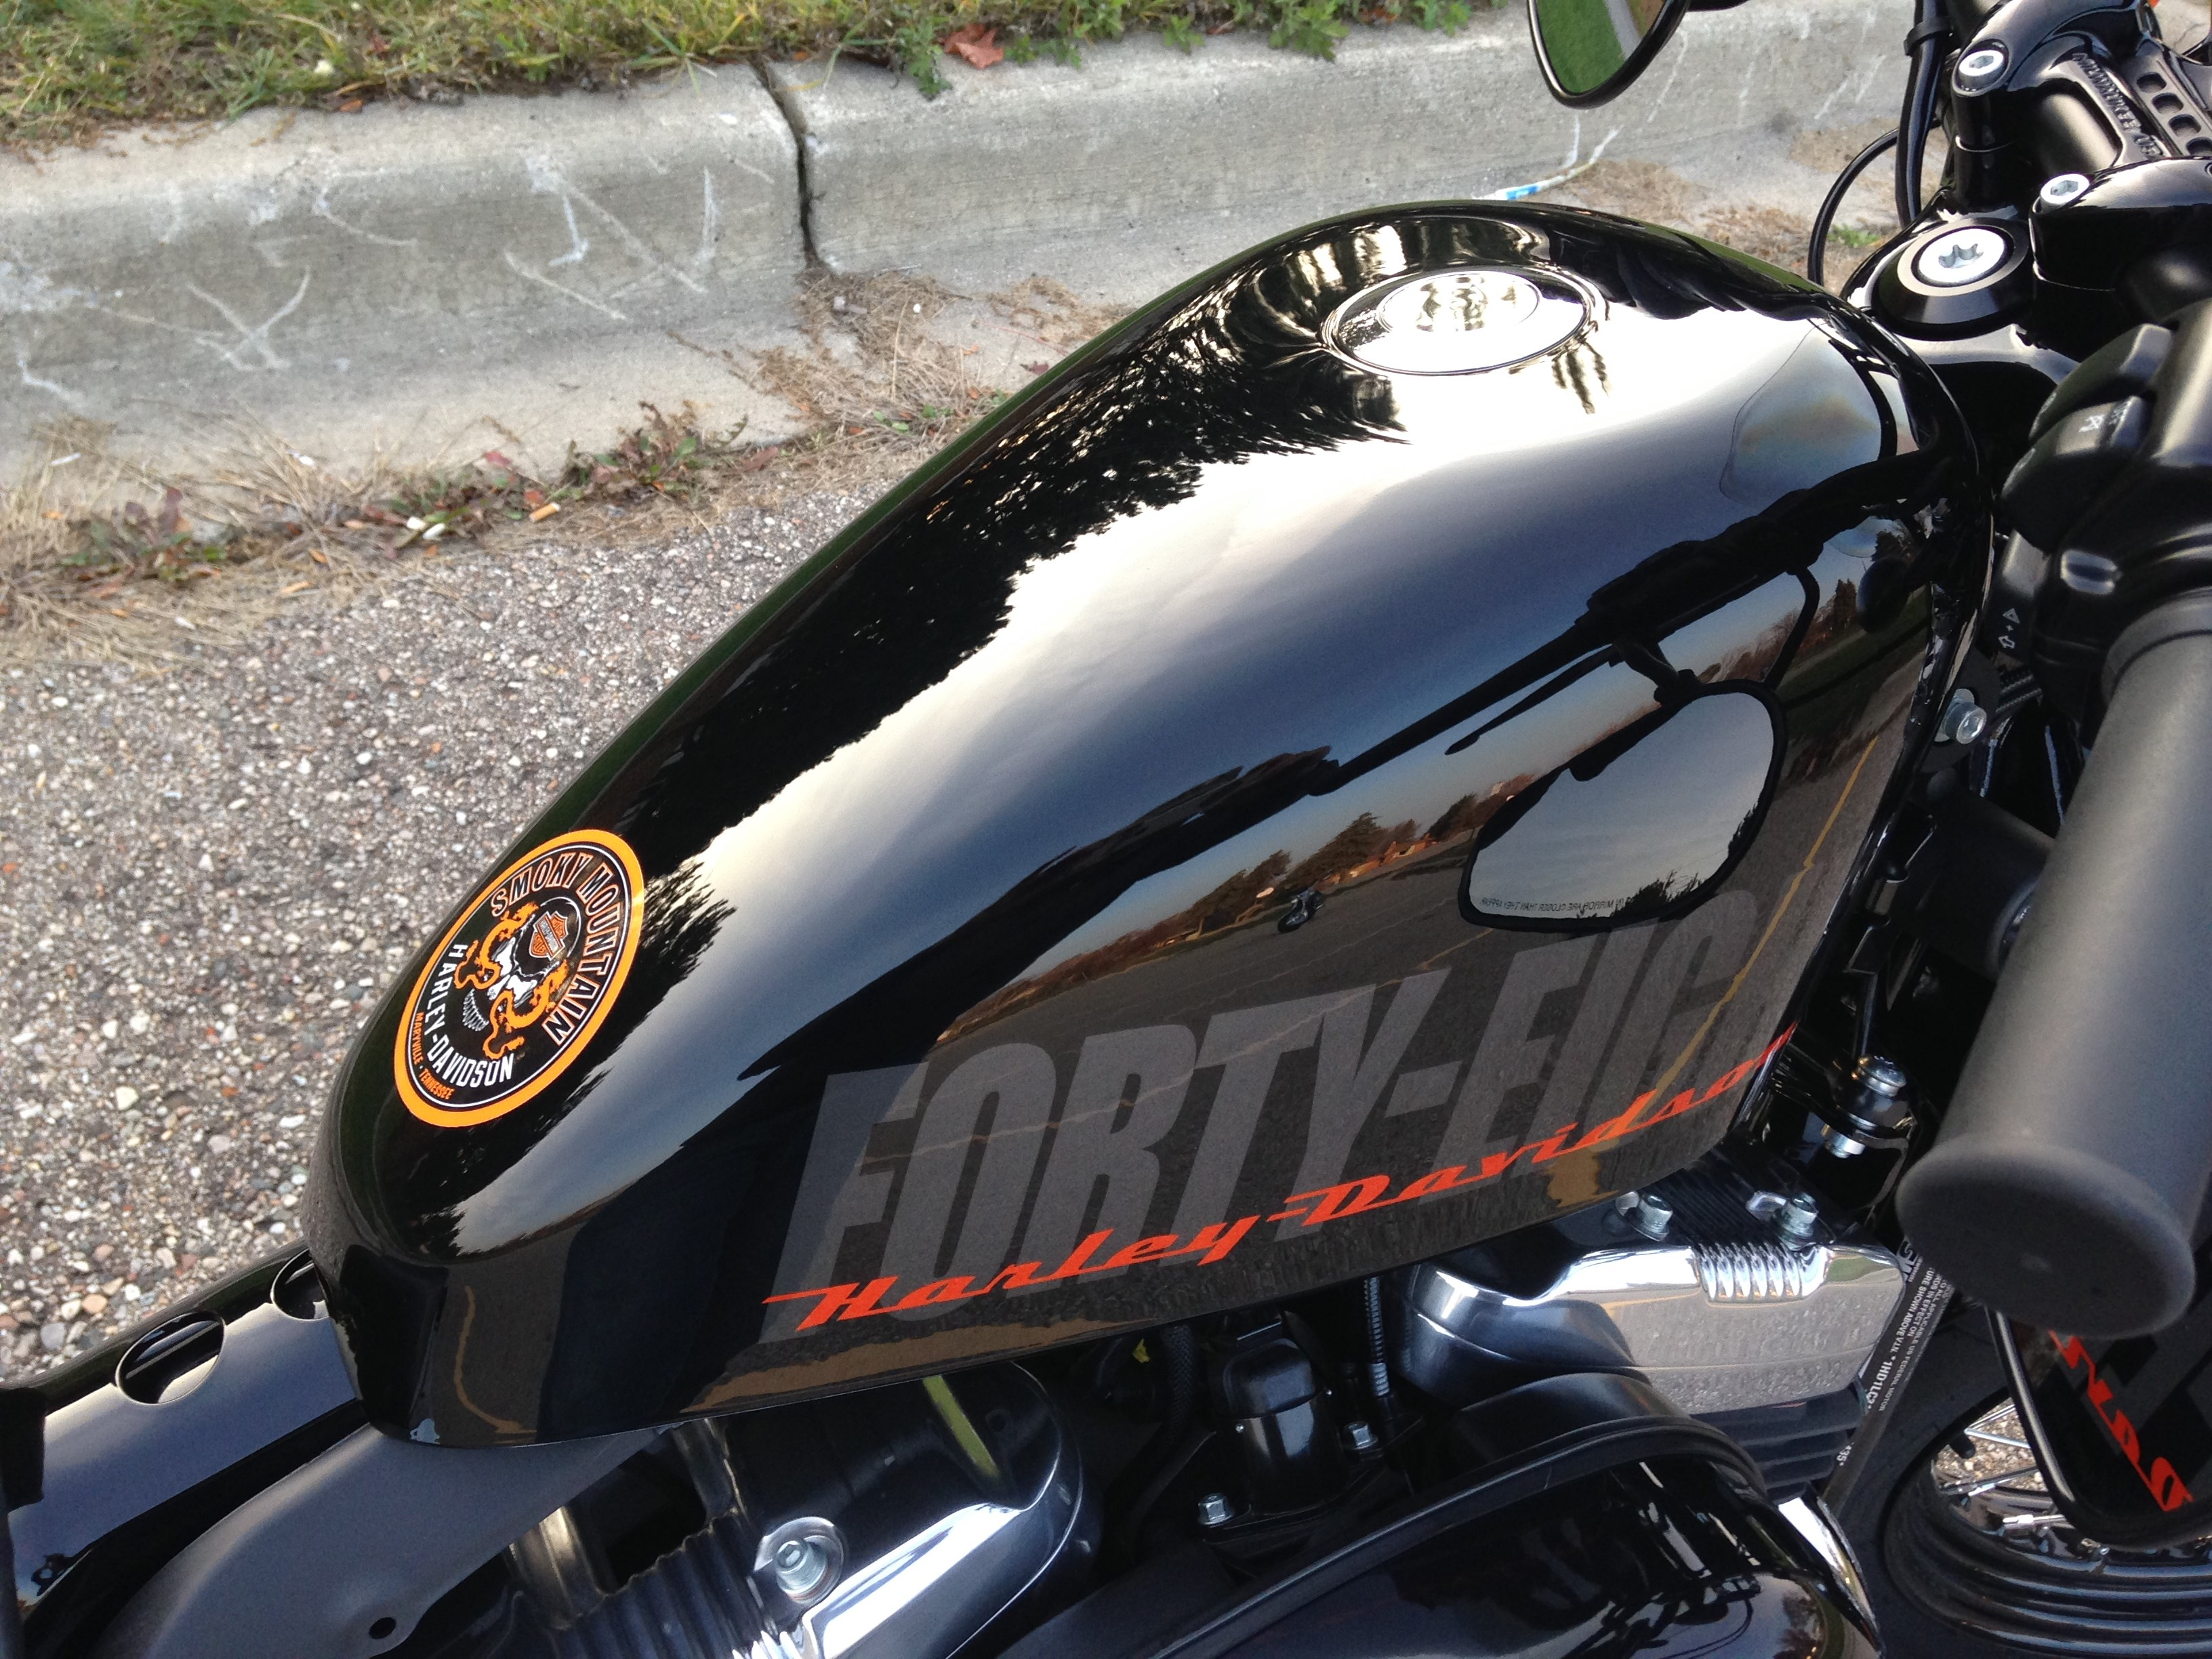 2013 Harley Davidson 174 Xl1200x Sportster 174 Forty Eight